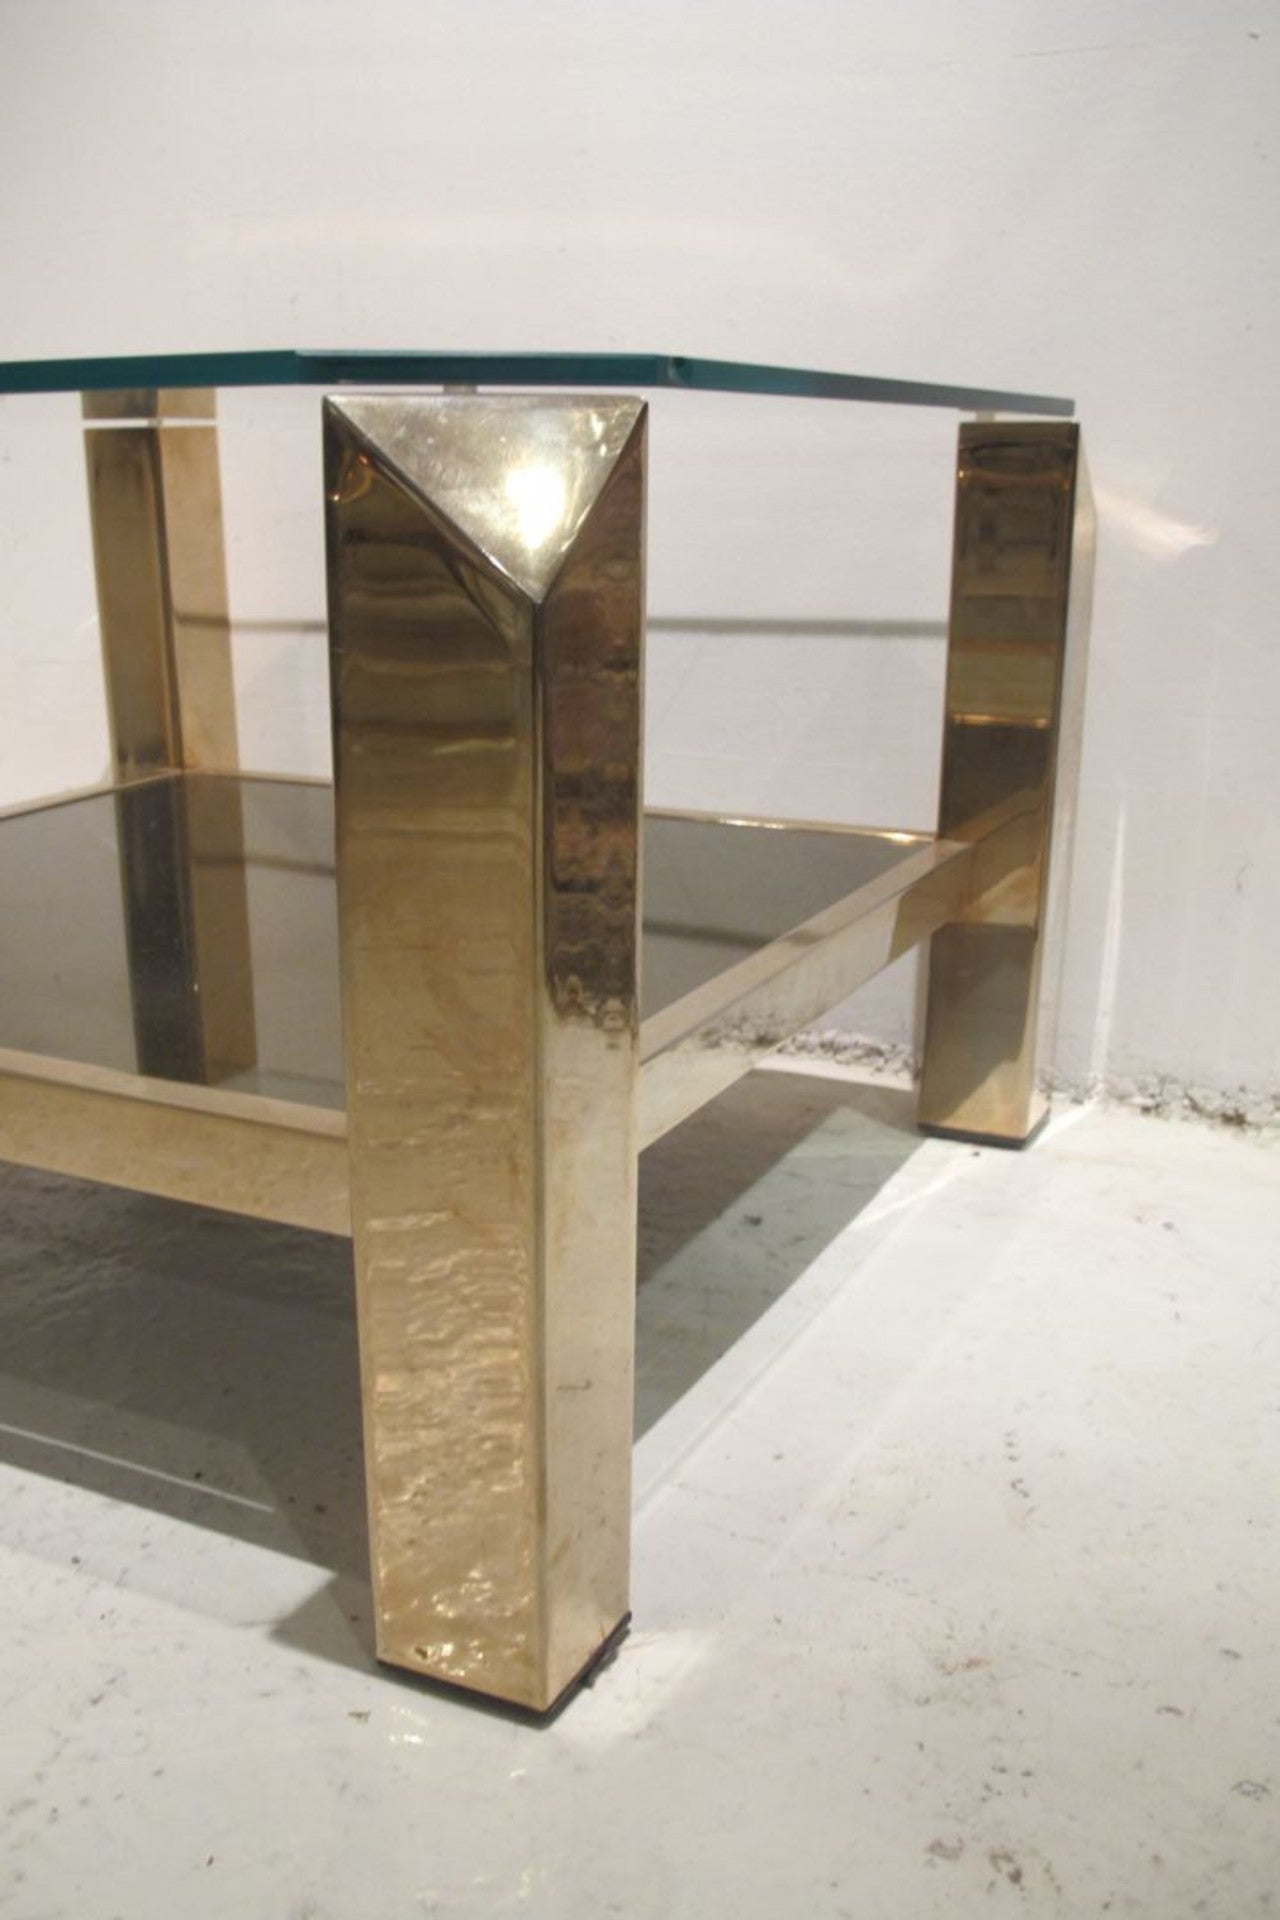 Stylish 1970s Faceted Corner Brass and Glass Side Table with Mirrored Lower Tier